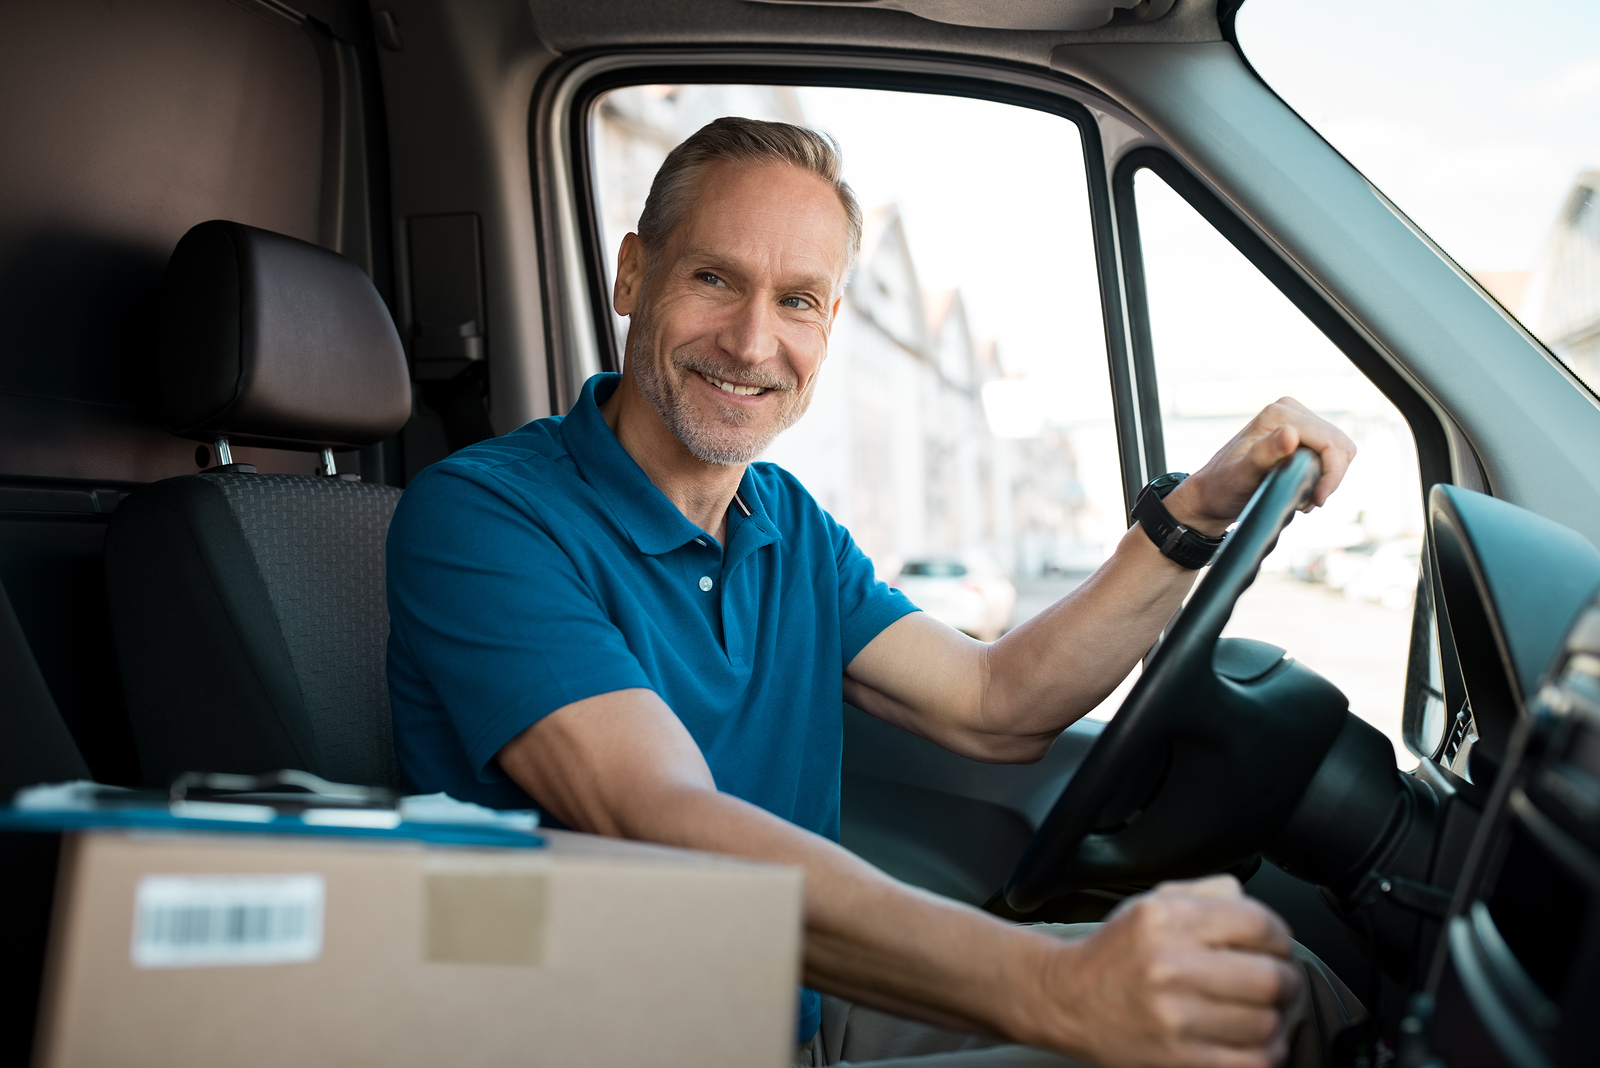 bigstock-Delivery-man-driving-van-with--221146801.jpg